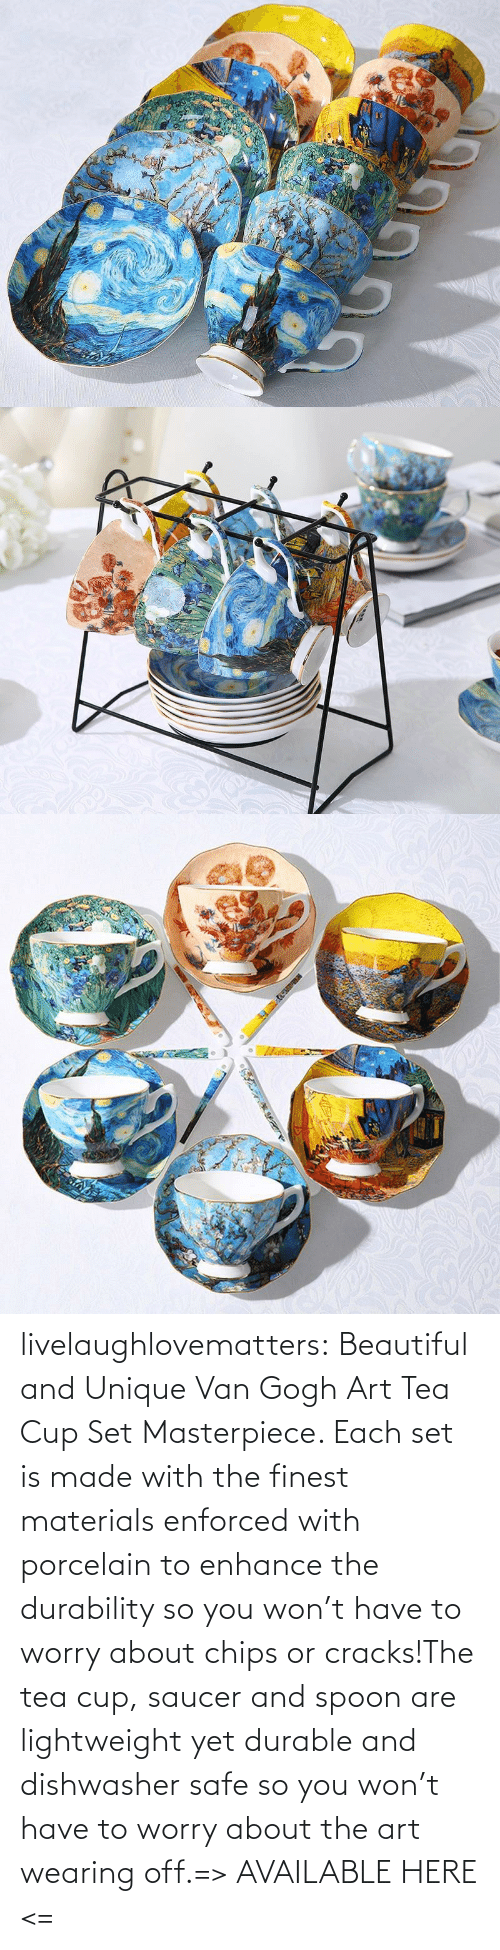 beautiful: livelaughlovematters:  Beautiful and Unique Van Gogh Art Tea Cup Set Masterpiece. Each set is made with the finest materials enforced with porcelain to enhance the durability so you won't have to worry about chips or cracks!The tea cup, saucer and spoon are lightweight yet durable and dishwasher safe so you won't have to worry about the art wearing off.=> AVAILABLE HERE <=